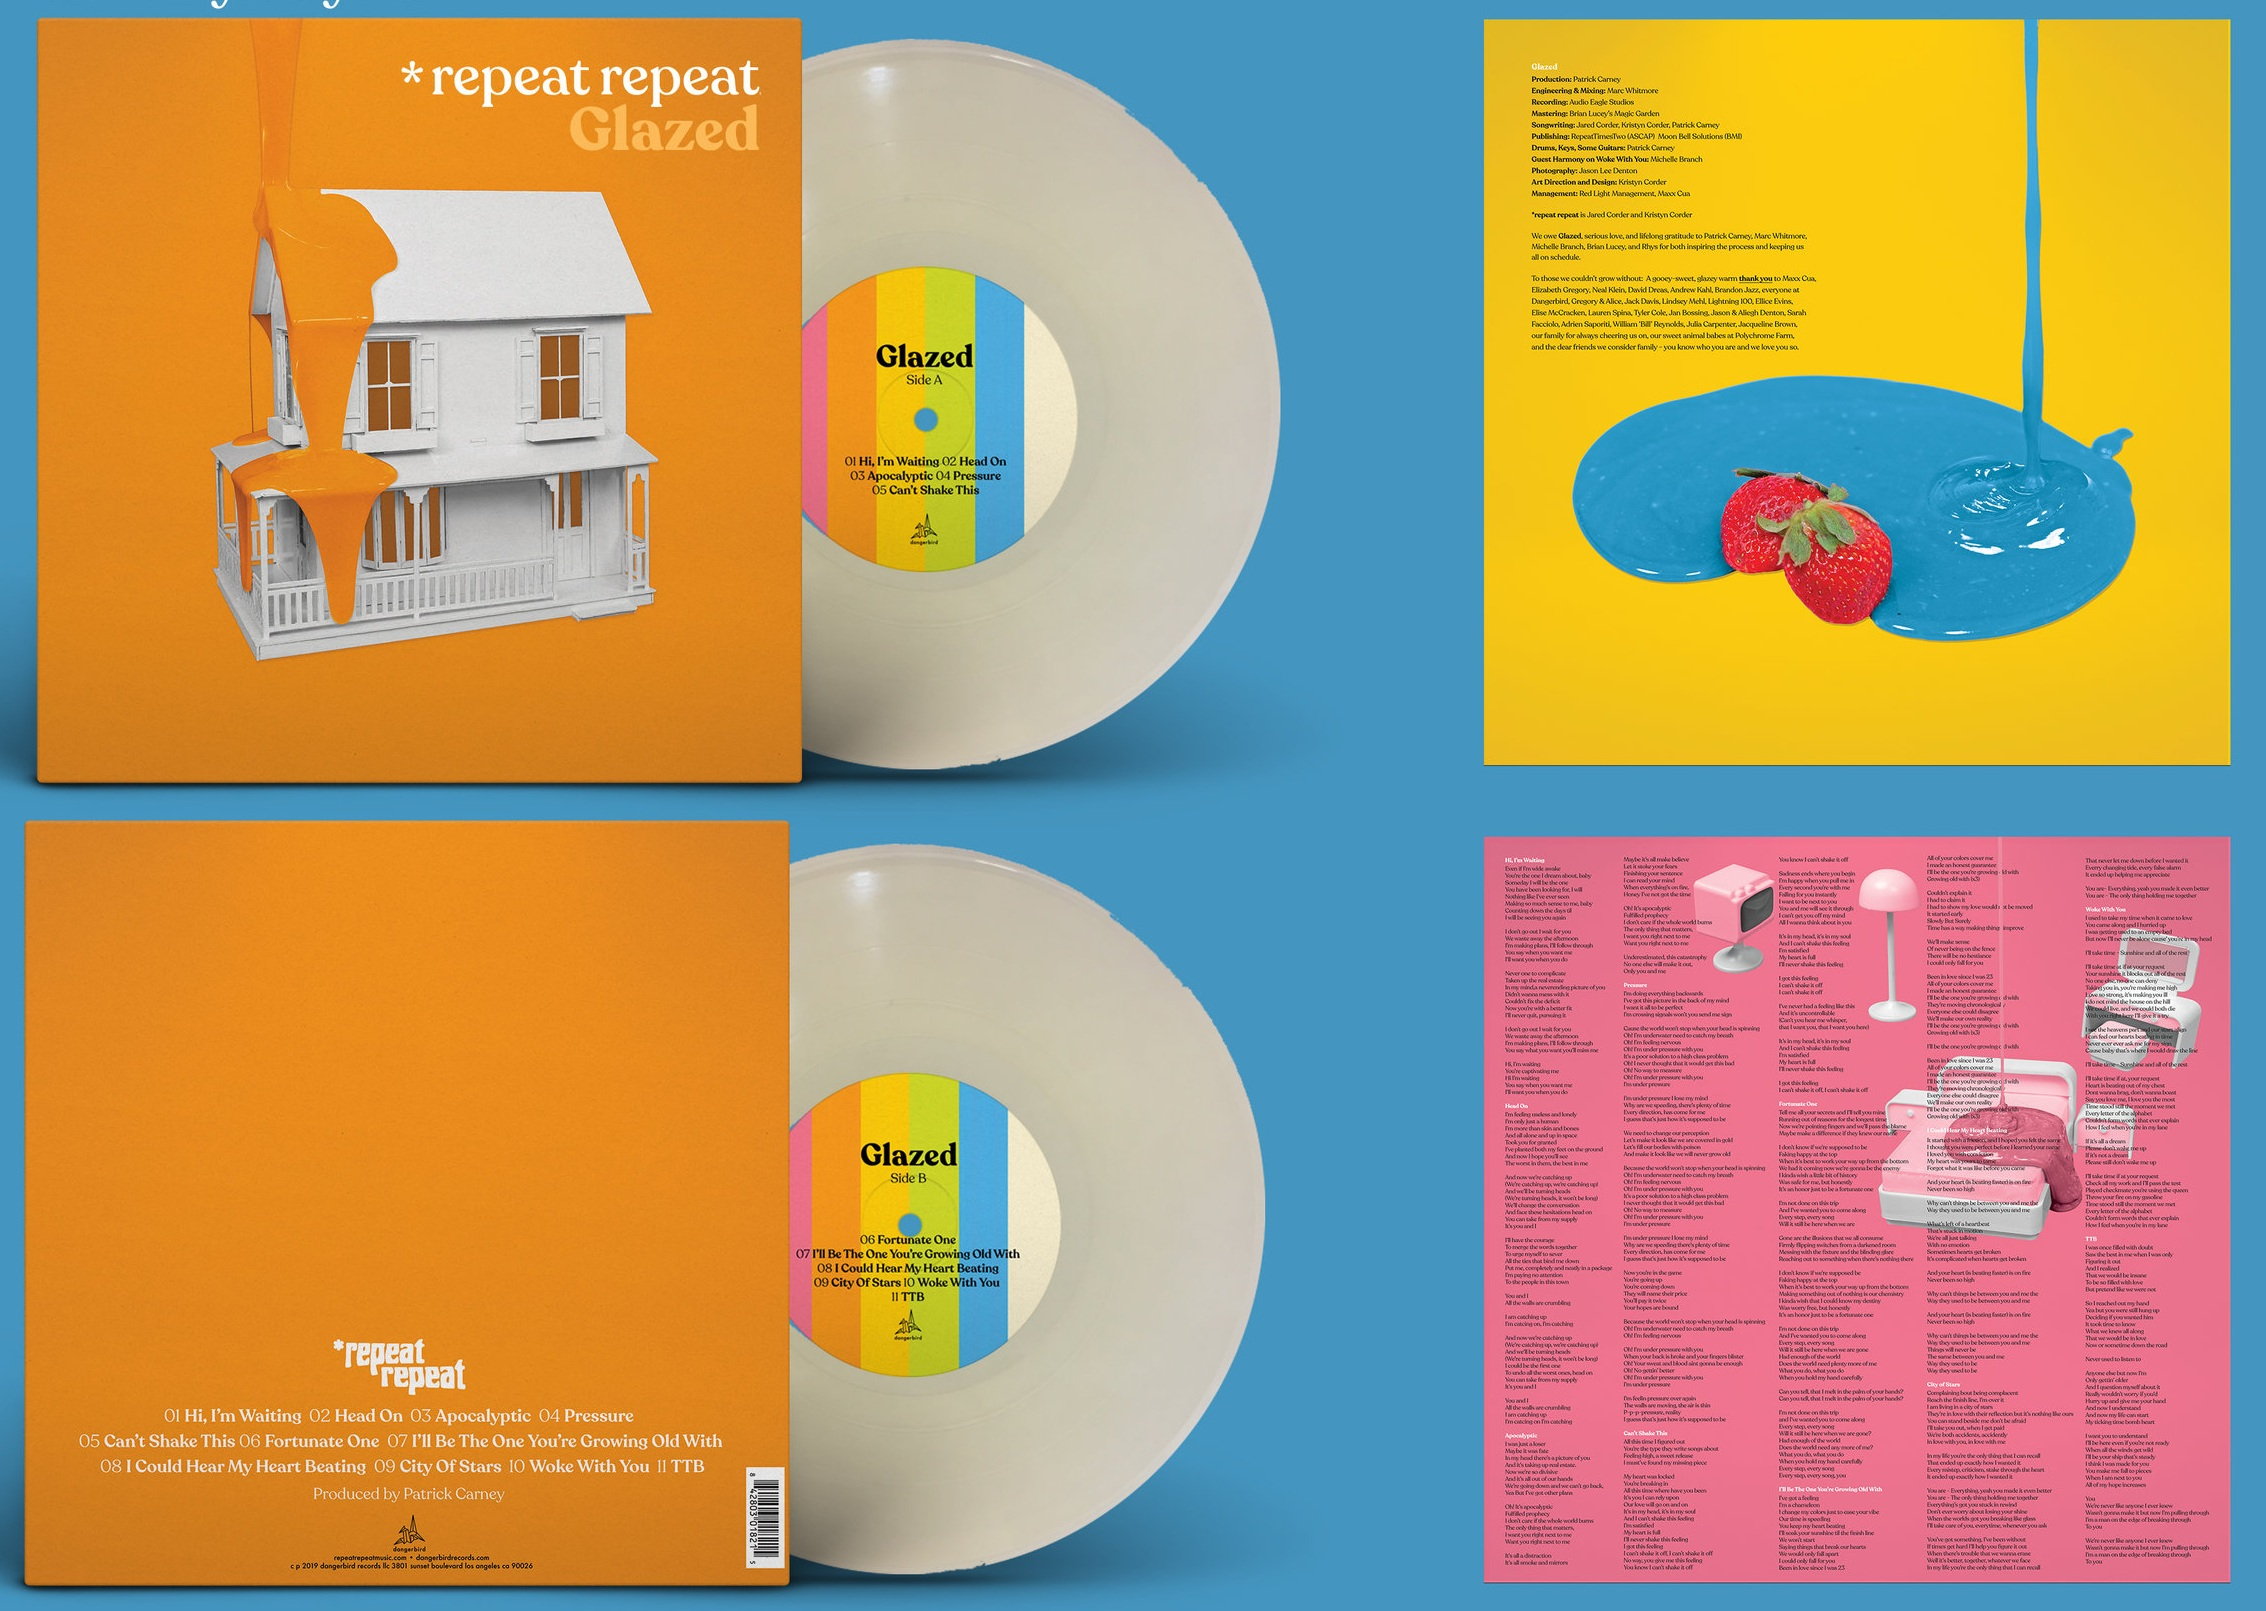 Glazed-vinyl-album-mockup_full-layout.jpg